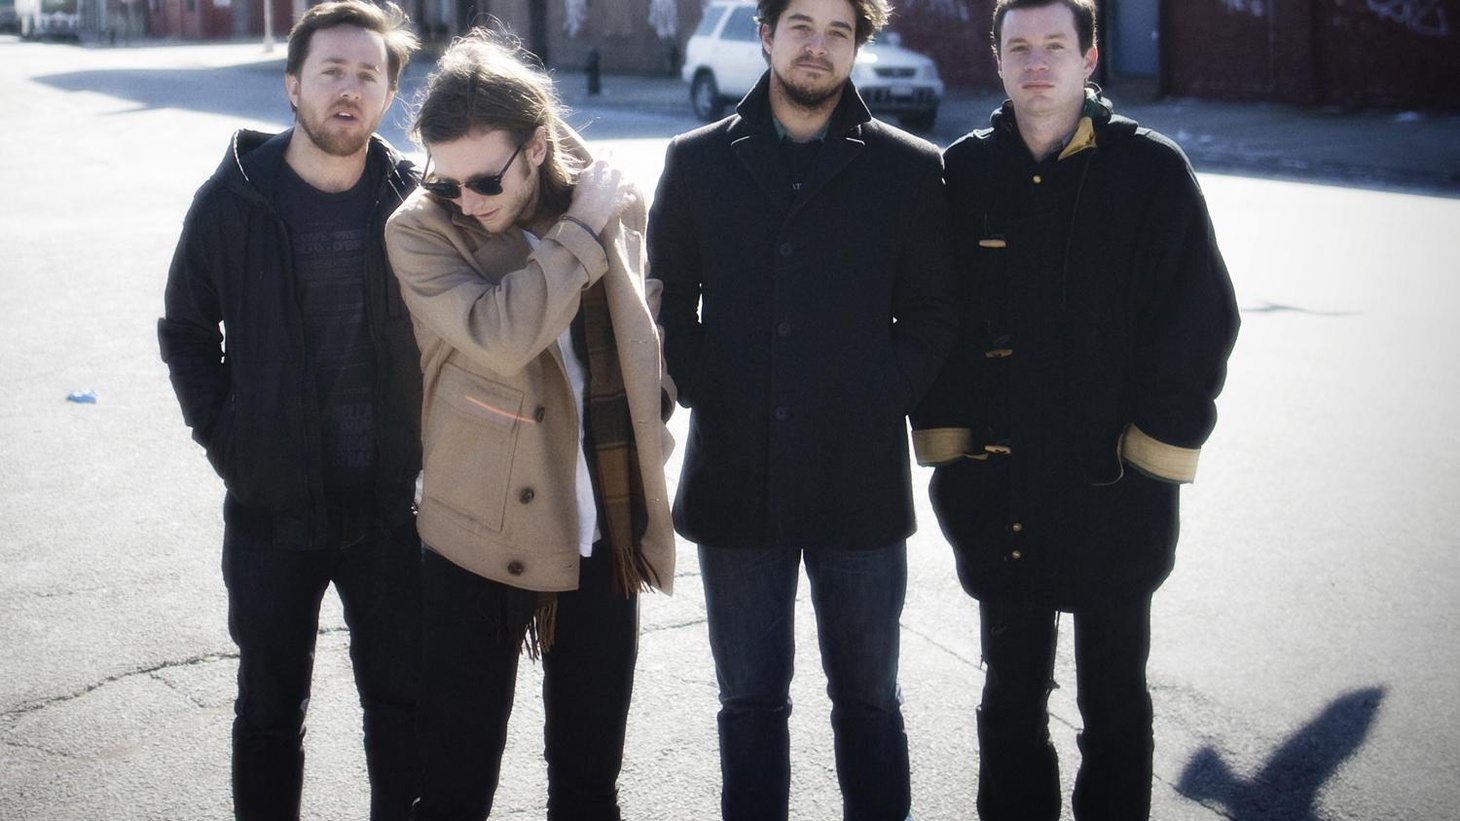 """If there is a lyrical theme in Delta Sprit's new sophomore record it's probably the idea of loss -- and the strength and endurance we discover as subjects in the great experiments of love and life.     Similar to artists like Mumford & Sons, Dr. Dog, the Jayhawks and The Whigs, Delta Spirit stay faithful to a foundation of roots-rock influences while incorporating a modern, indie-rock sound that keeps the music feeling fresh and contemporary.  And it's an album that grows on you in the best of ways.  When lead singer Matt Vazquez sings on """"Bushwick Blues,"""" """"My love is strong, but my heart is weak,"""" you can't help but feel his vulnerability and identify with his feeling of tentative conviction. While tracks like """"Vivian"""" and """"White Table"""" lay bear all the truths and dents we accumulate over time with a wisdom that says don't worry, that's exactly the way it's supposed to be.  With a mix of stark and gorgeous harmonica, finger picking guitar, and multi-instrumentalism, History from Below provides a gentle nudge into music reinvention while feeling comfortably familiar so you can sit back and take it all in.  Official artist website: http://www.deltaspirit.net  History From Below will be available on-demand May 24 - June 22, 2010  Track listing:  1. 911 2. Bushwick Blues 3. Salt In The Wound 4. White Table 5. Ransom Man 6. Devil Knows Your Dead 7. Golden State 8. Scarecrow 9. Vivian   10. St. Francis 11. Ballad Of Vitaly  -->"""